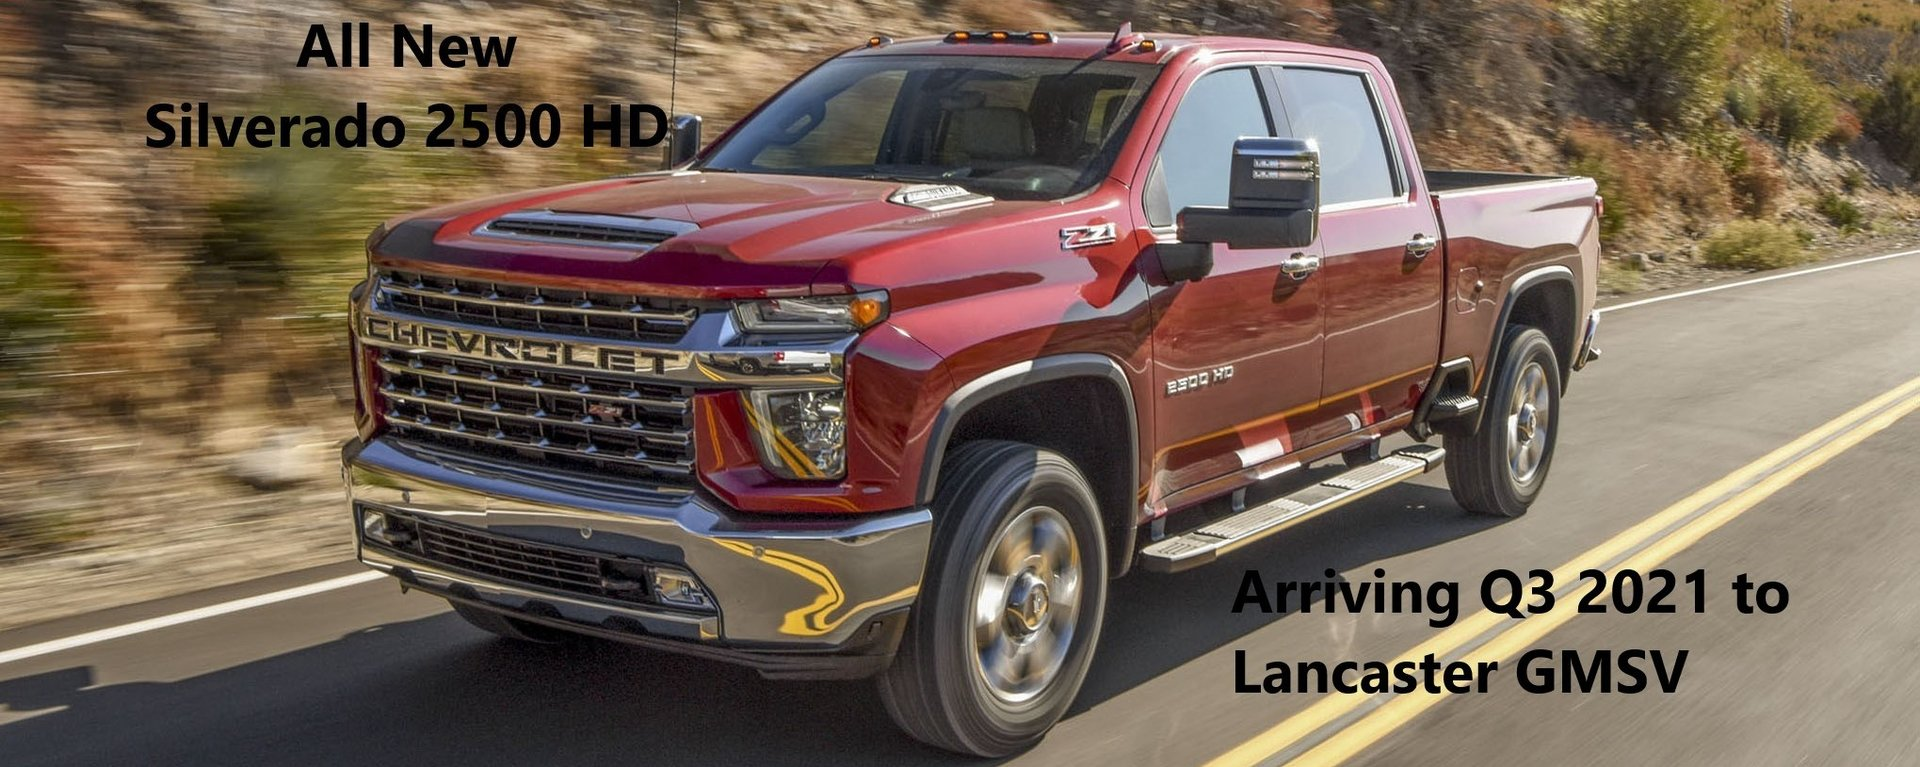 The all new Silverado 2500 HD arriving soon